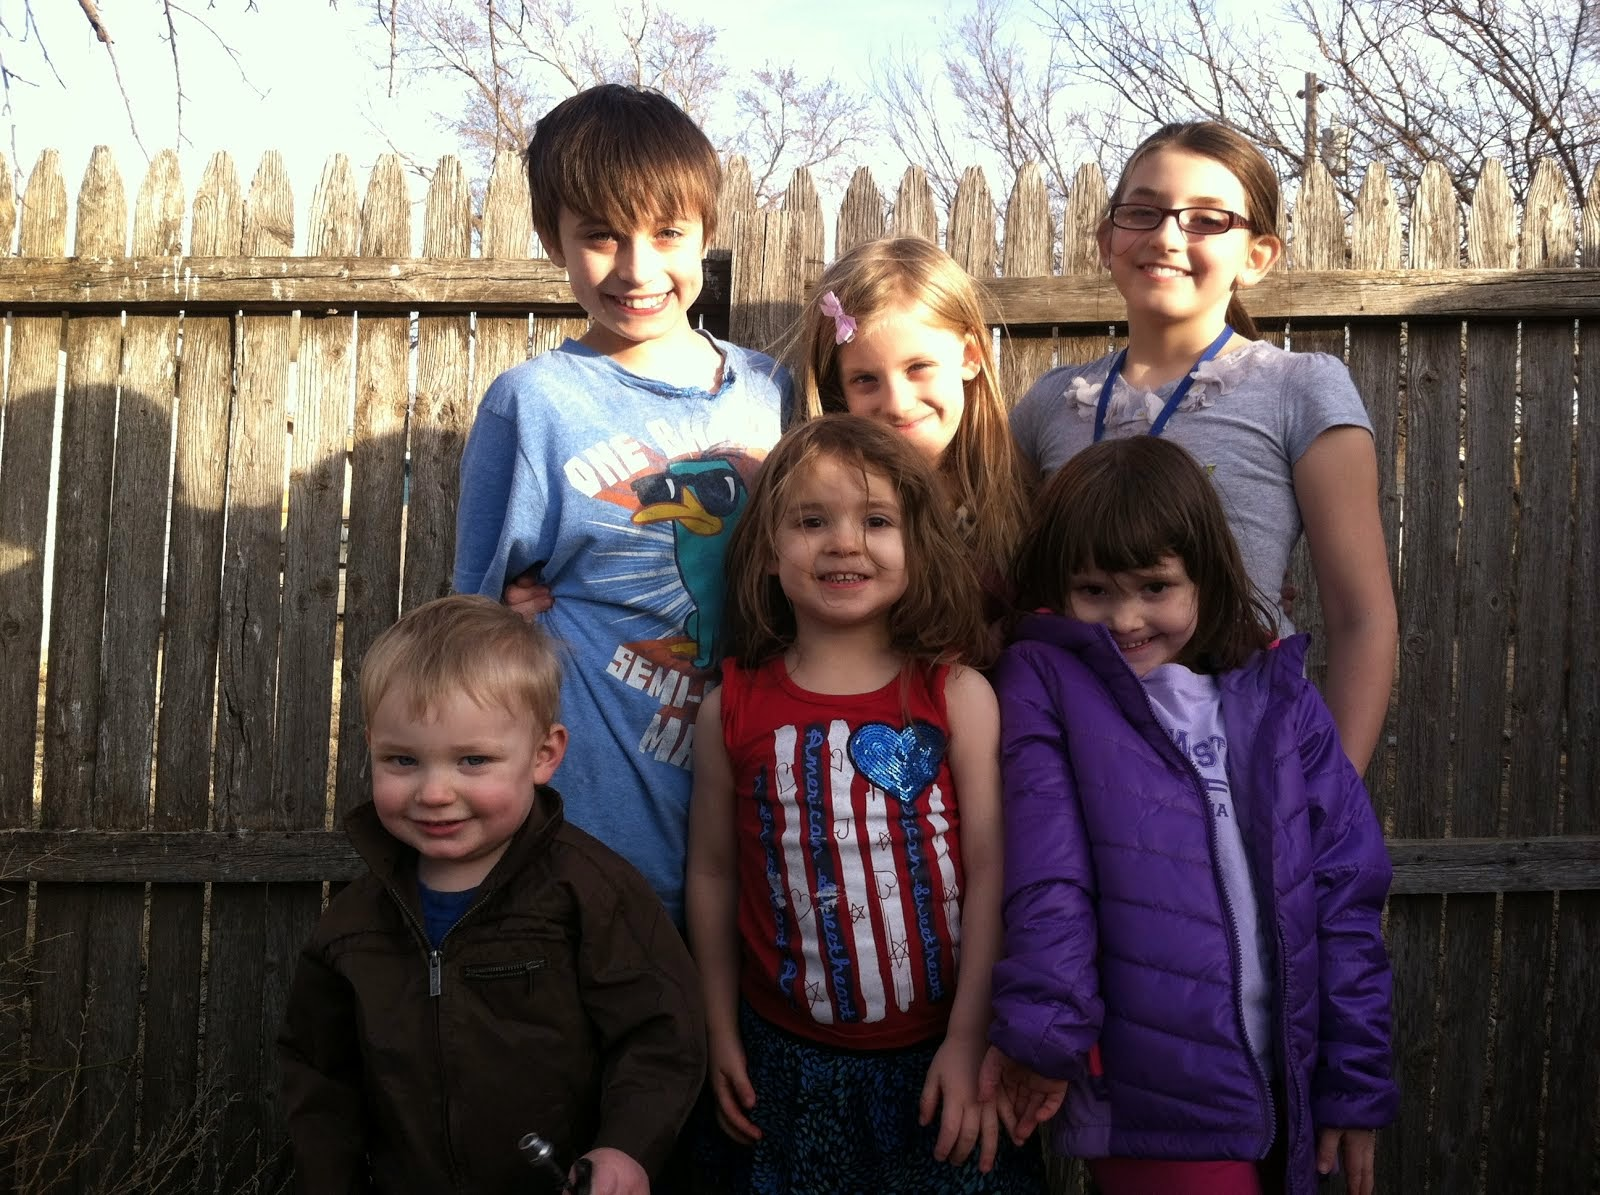 My awesome kiddos